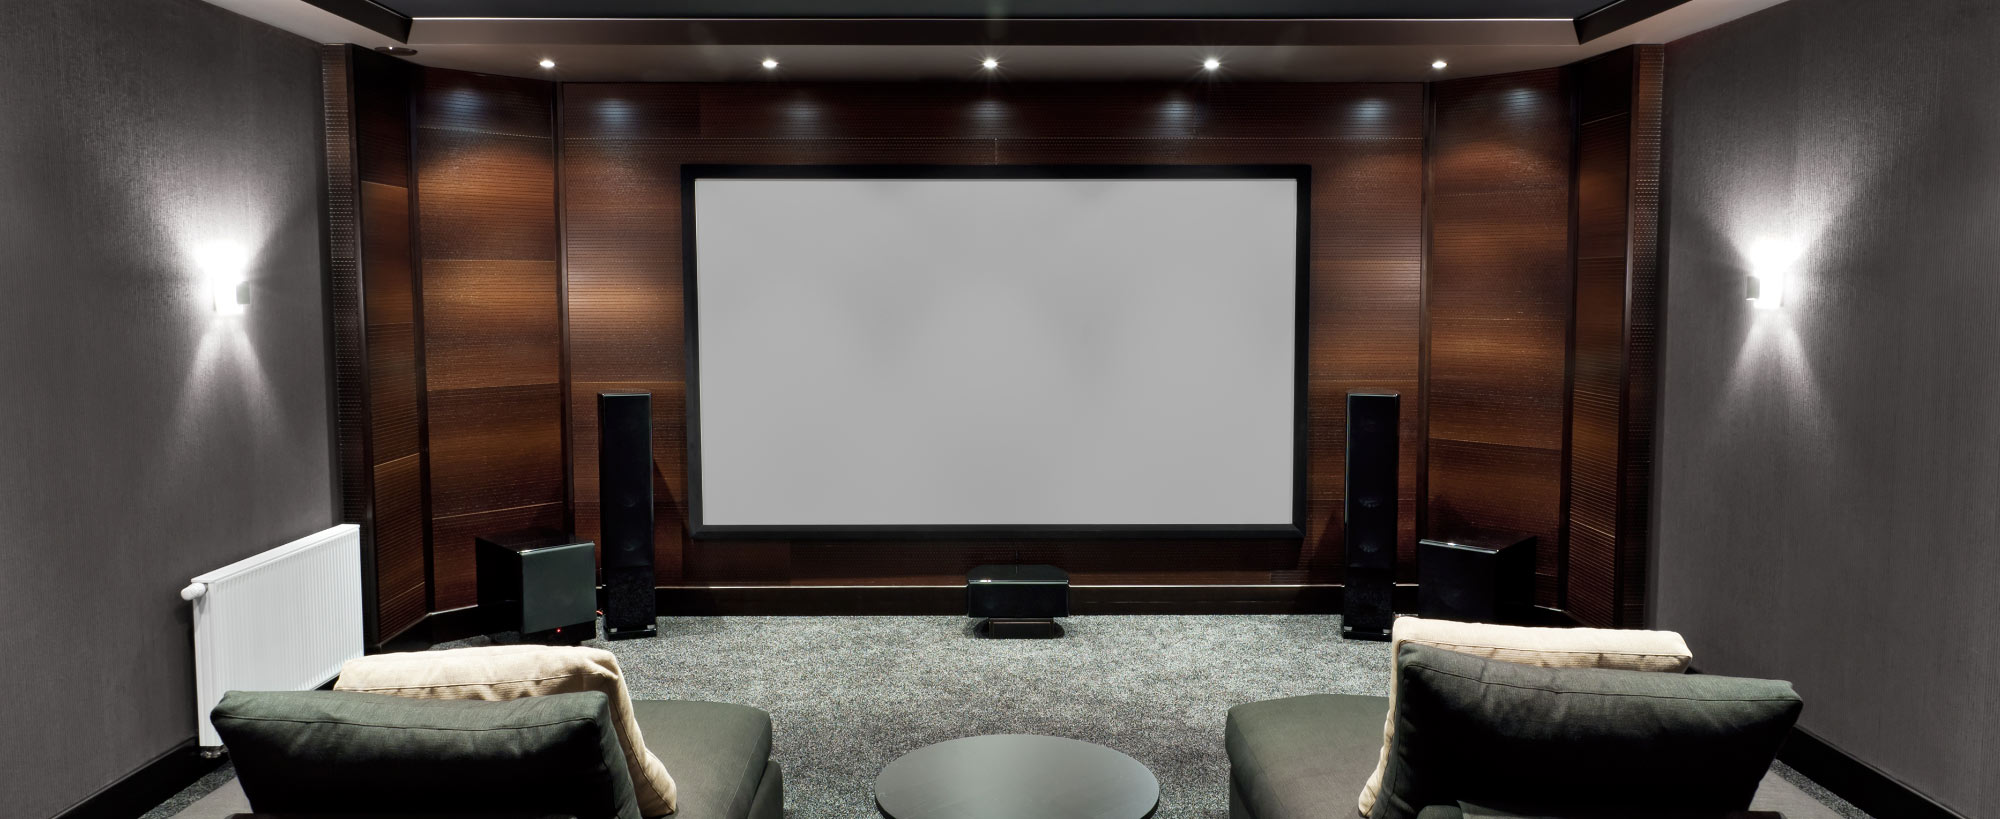 Home Theater In Wall Wiring Conduit Free Diagram For You Entertainment Theatre Installation Cbl Telecom Stereo Solutions